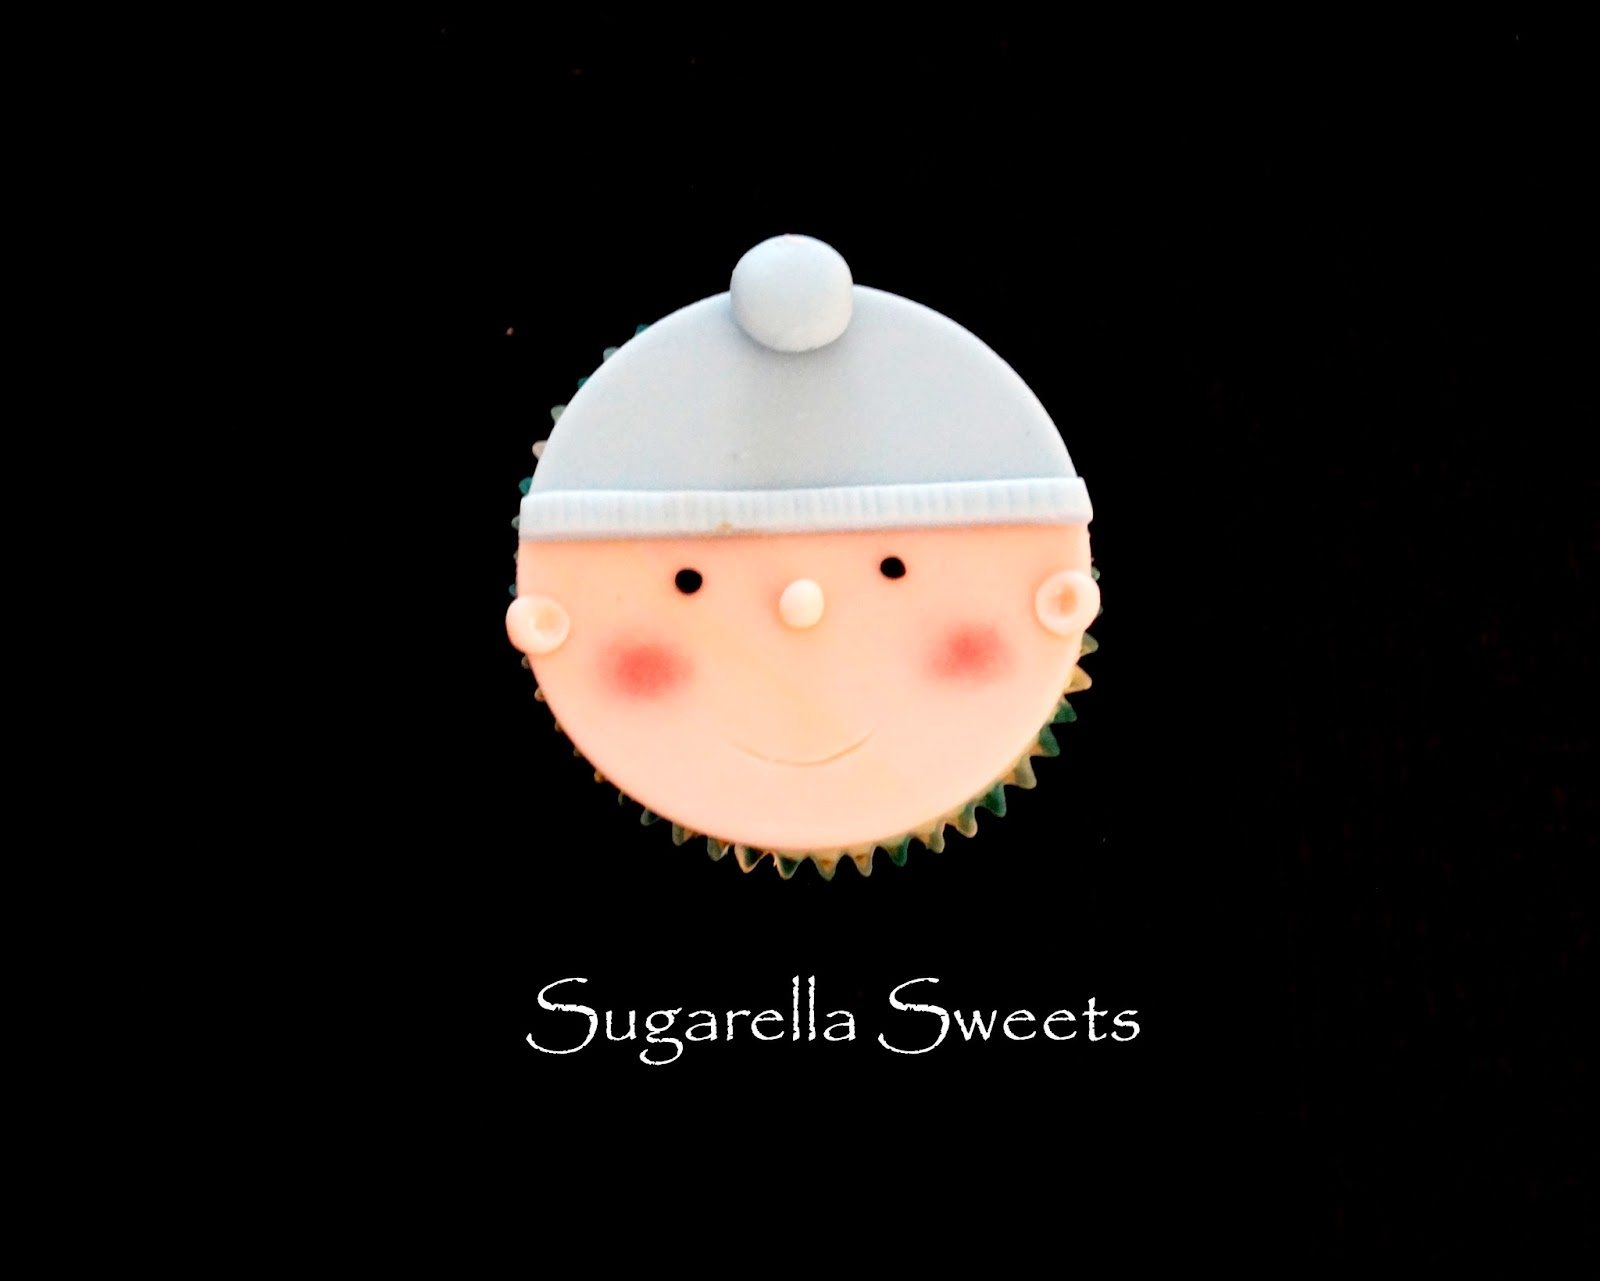 http://sugarellasweetshowto.blogspot.ca/2014/09/how-to-make-baby-face-cupcake.html